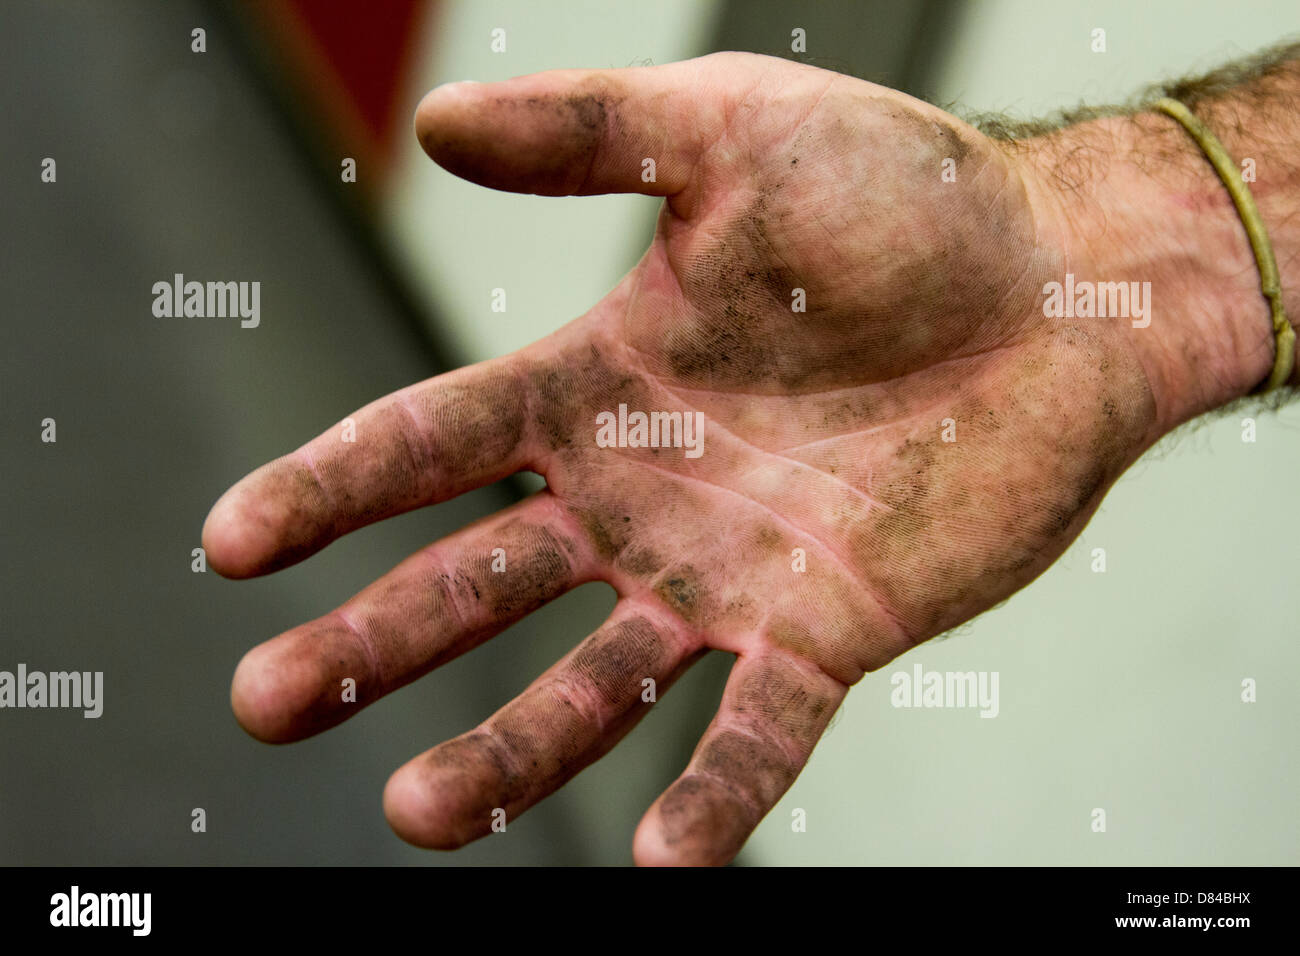 Dirty hand - Stock Image